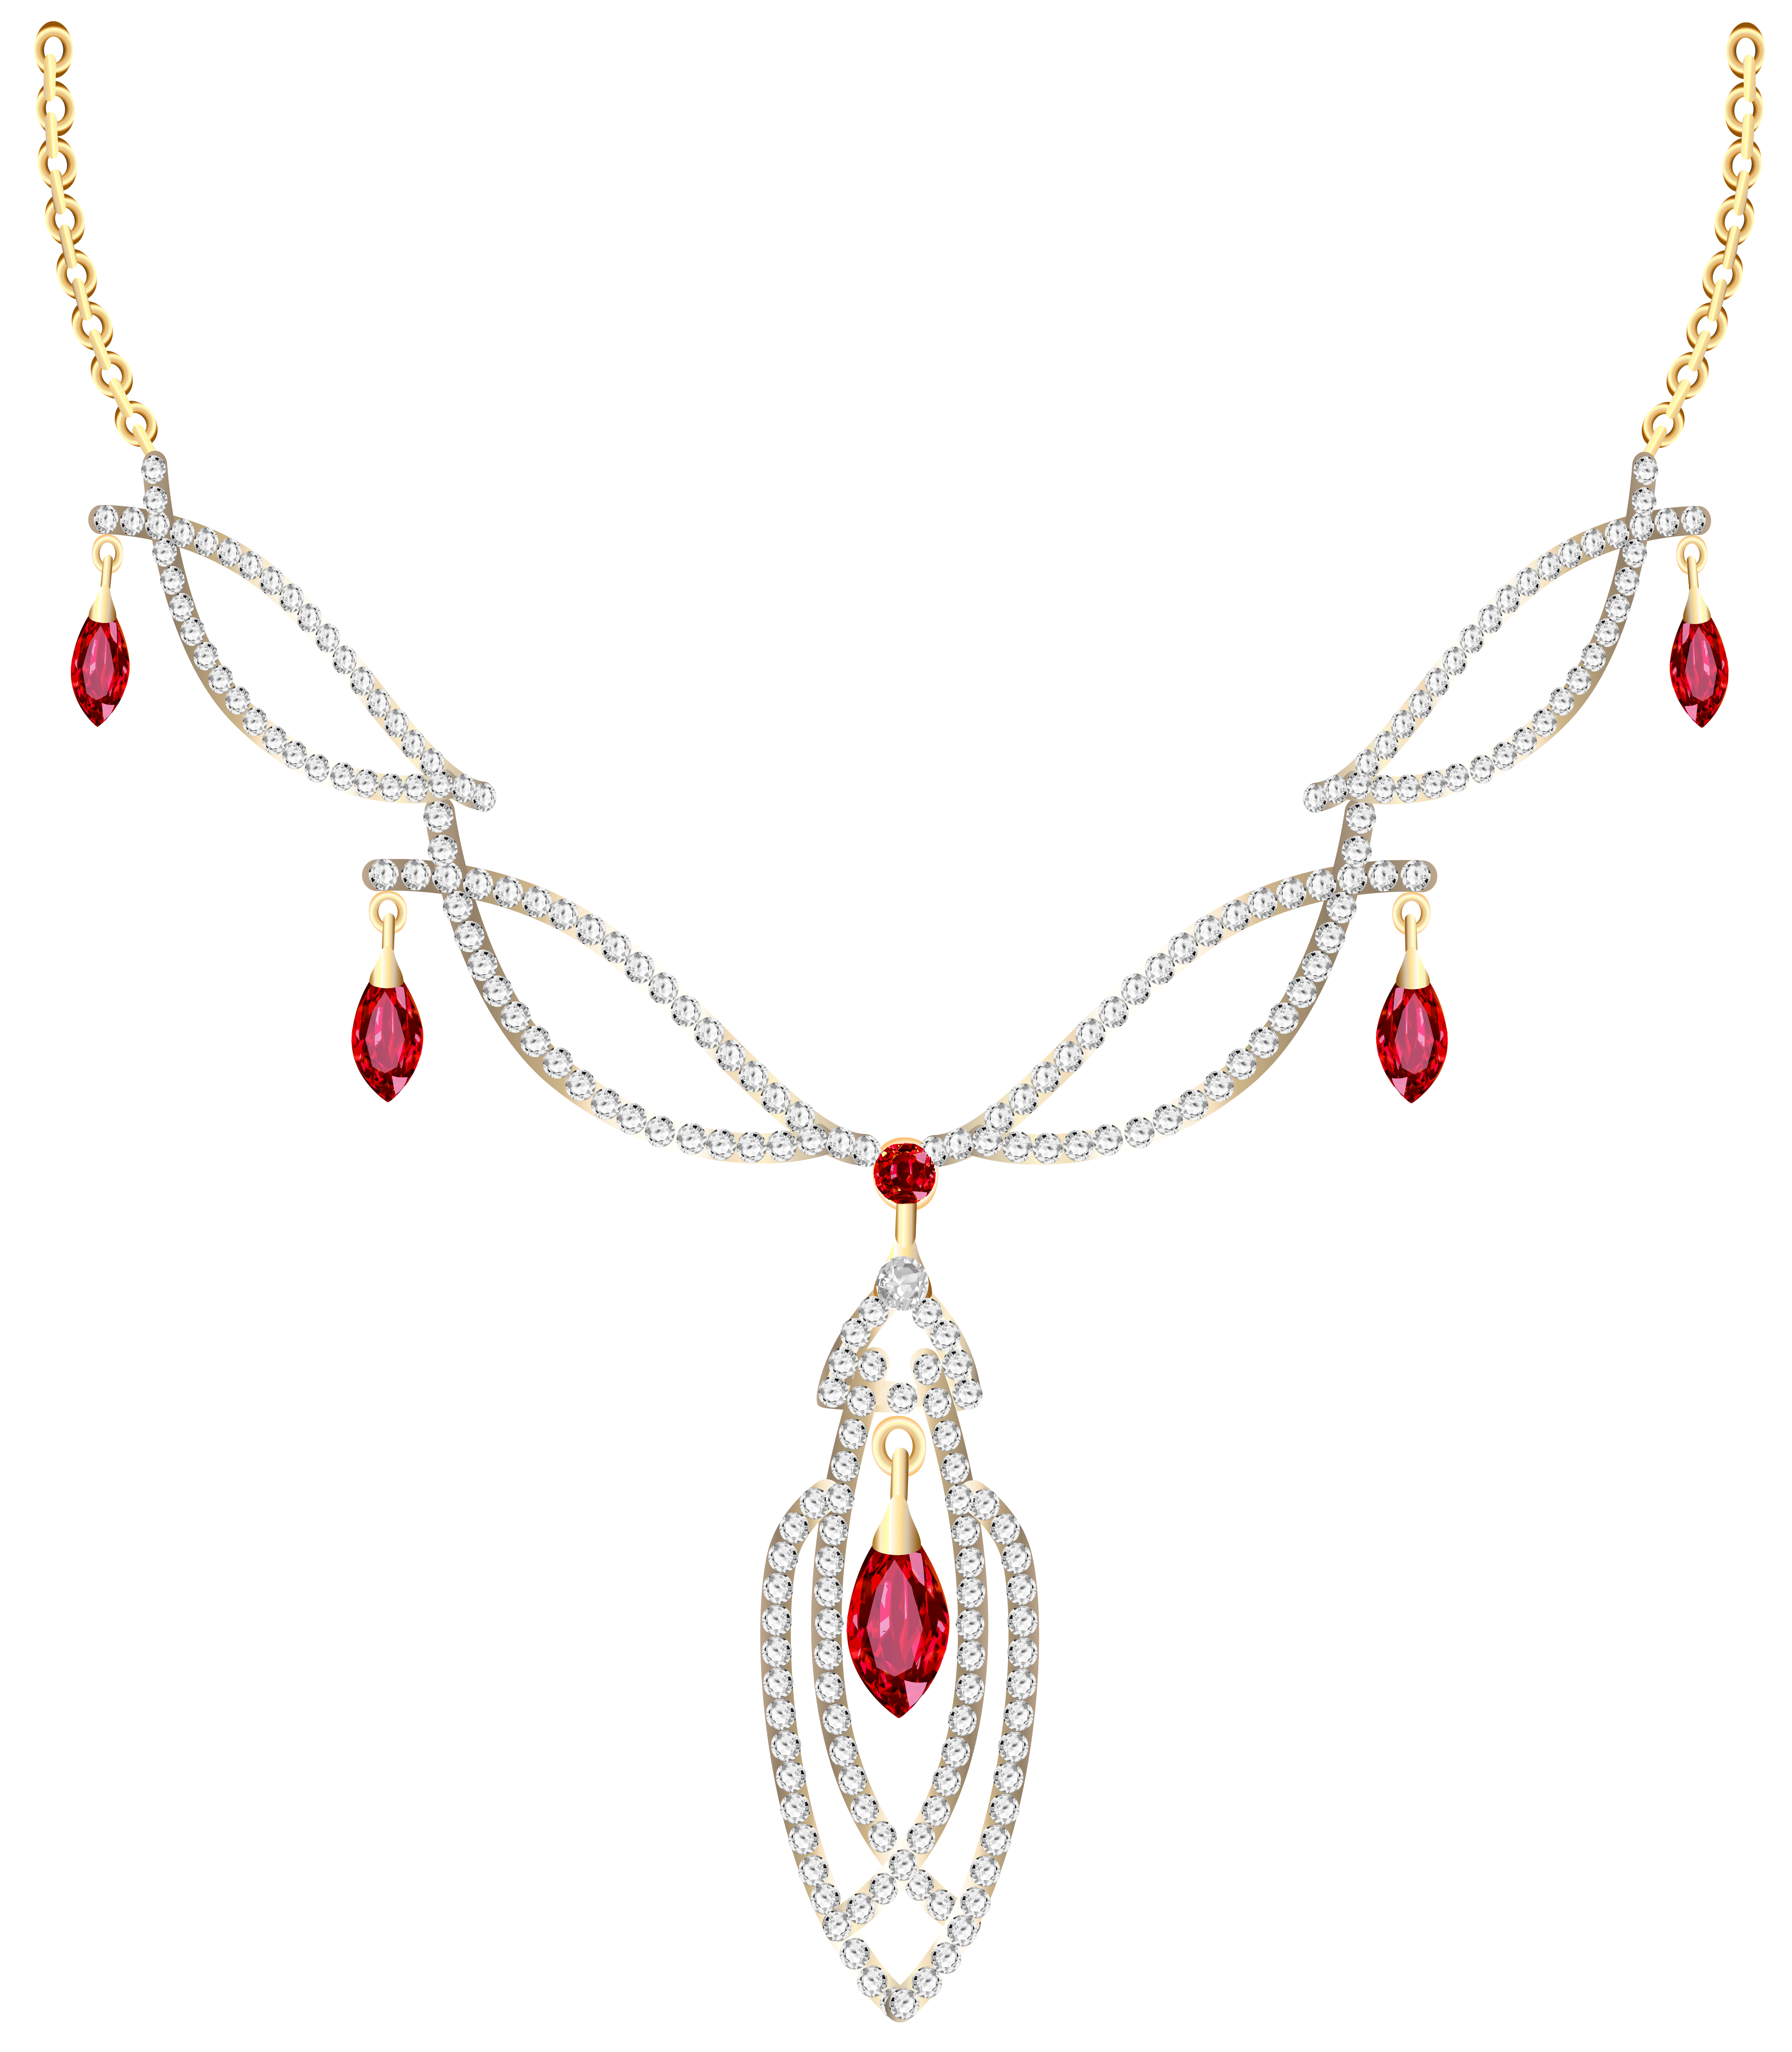 Golden Necklace with Diamonds PNG Clipart.